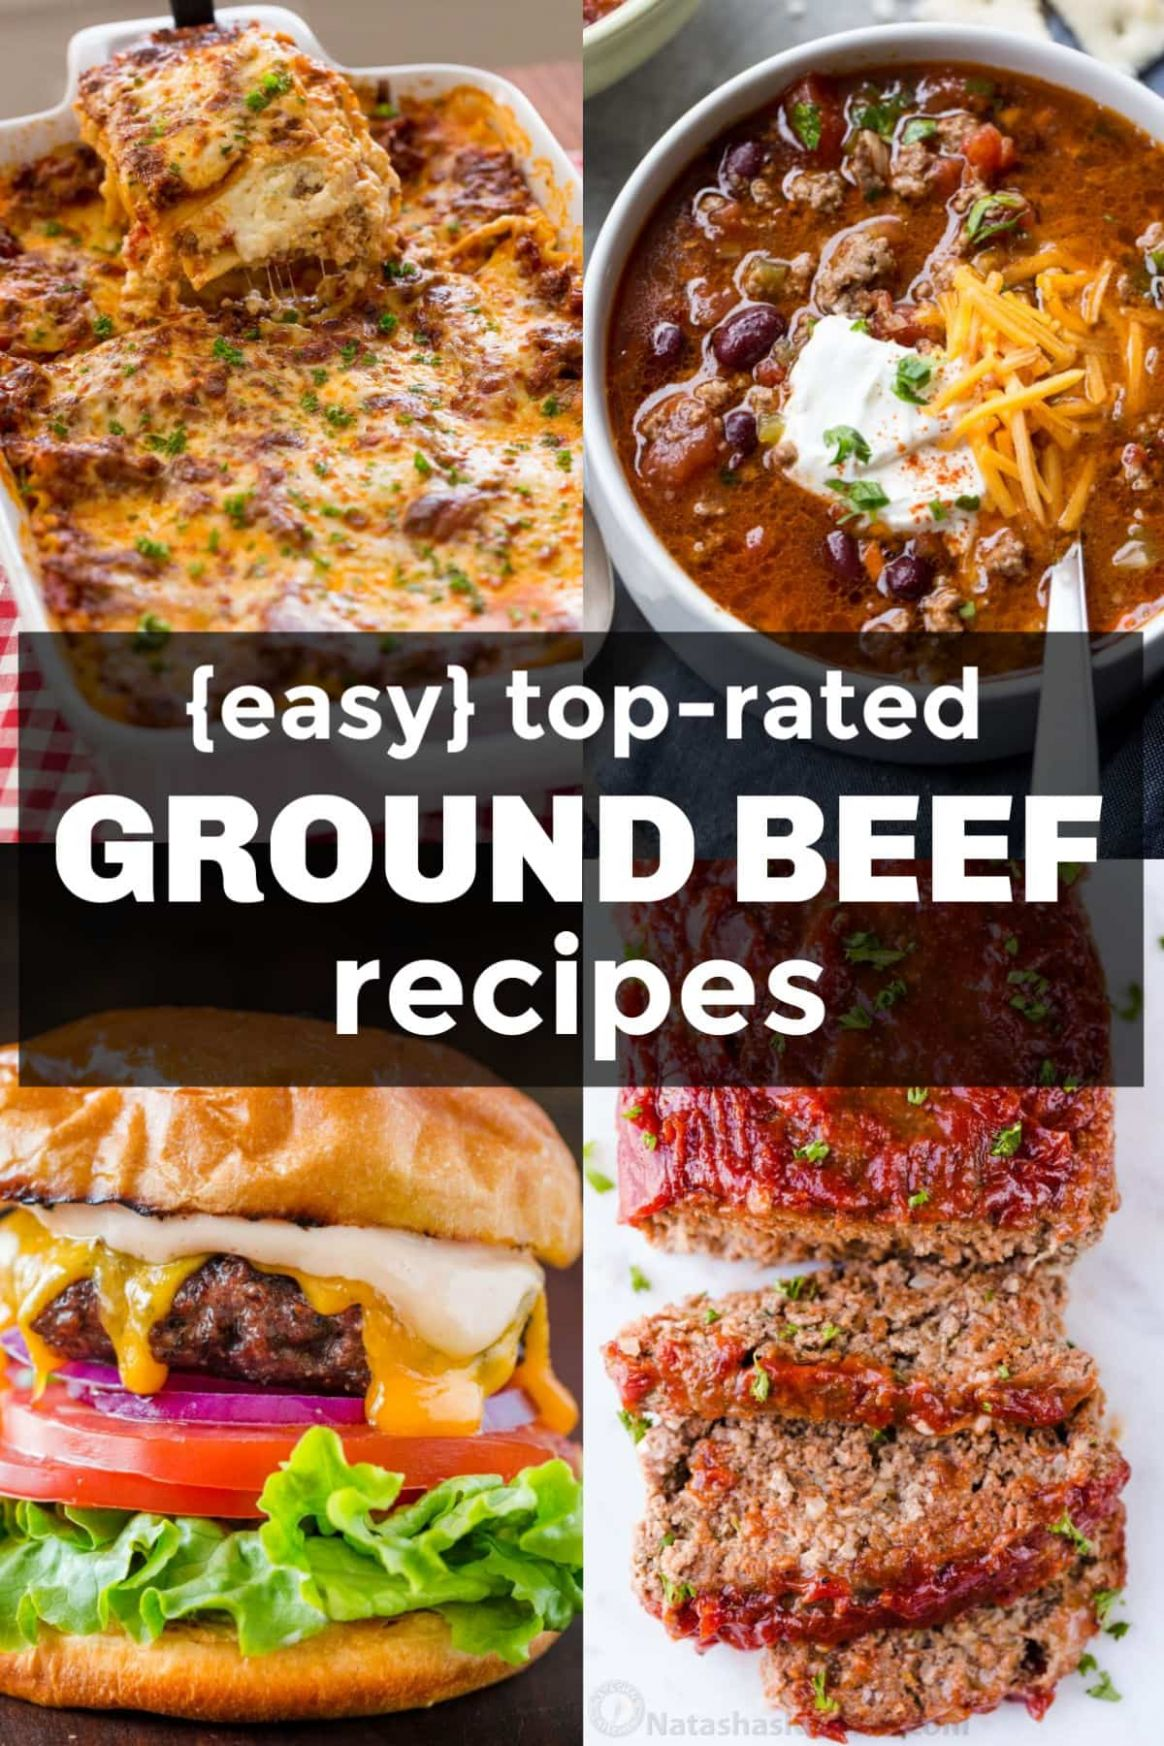 How to Cook Ground Beef for Ground Beef Recipes - Healthy Recipes Using Ground Beef